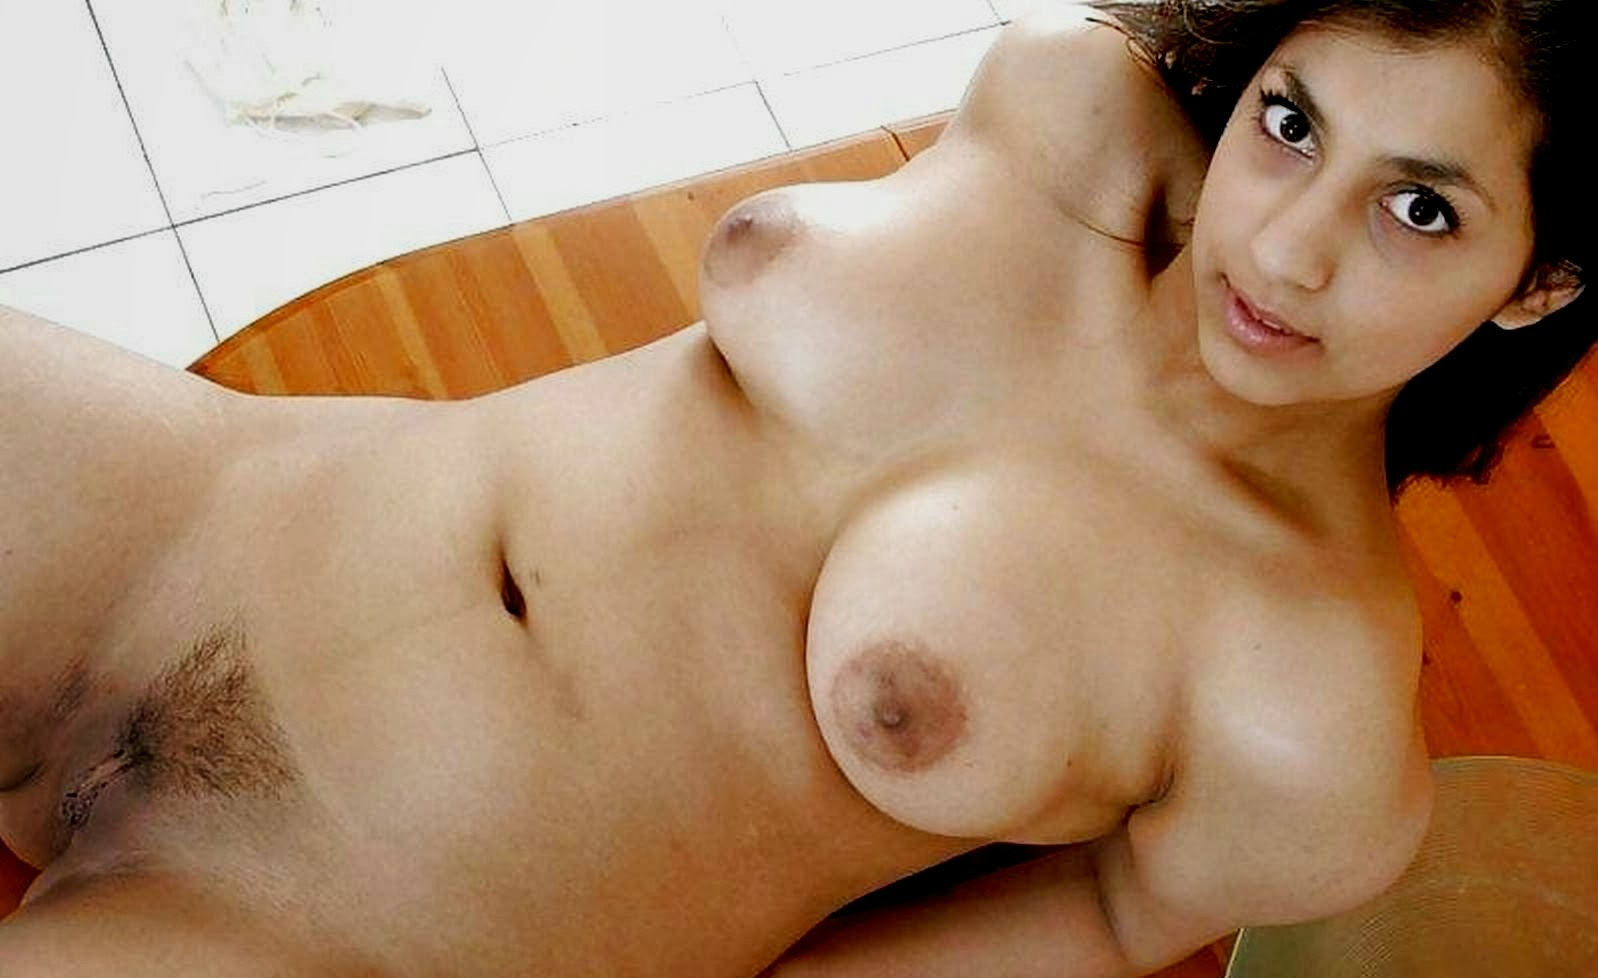 Middle east female nude